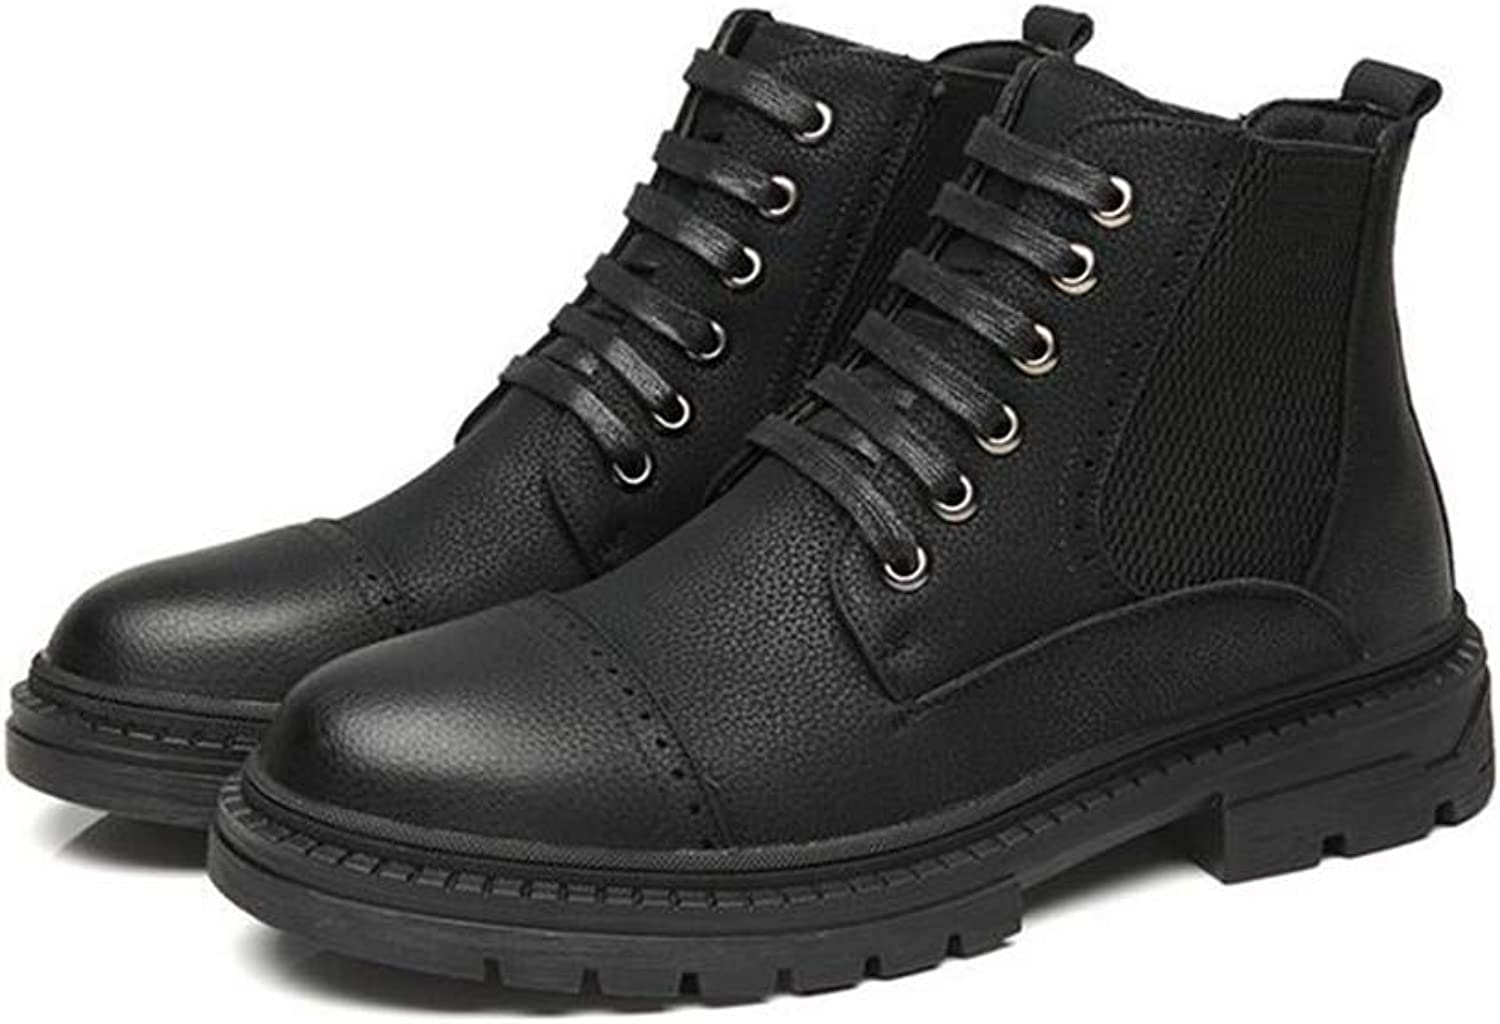 Y-H Men's Tooling Boots, Winter Plus Velvet Warm Windproof Military Boots,Mens Artificial PU Lace-up Martins Boots, Business shoes (color   Black, Size   44)